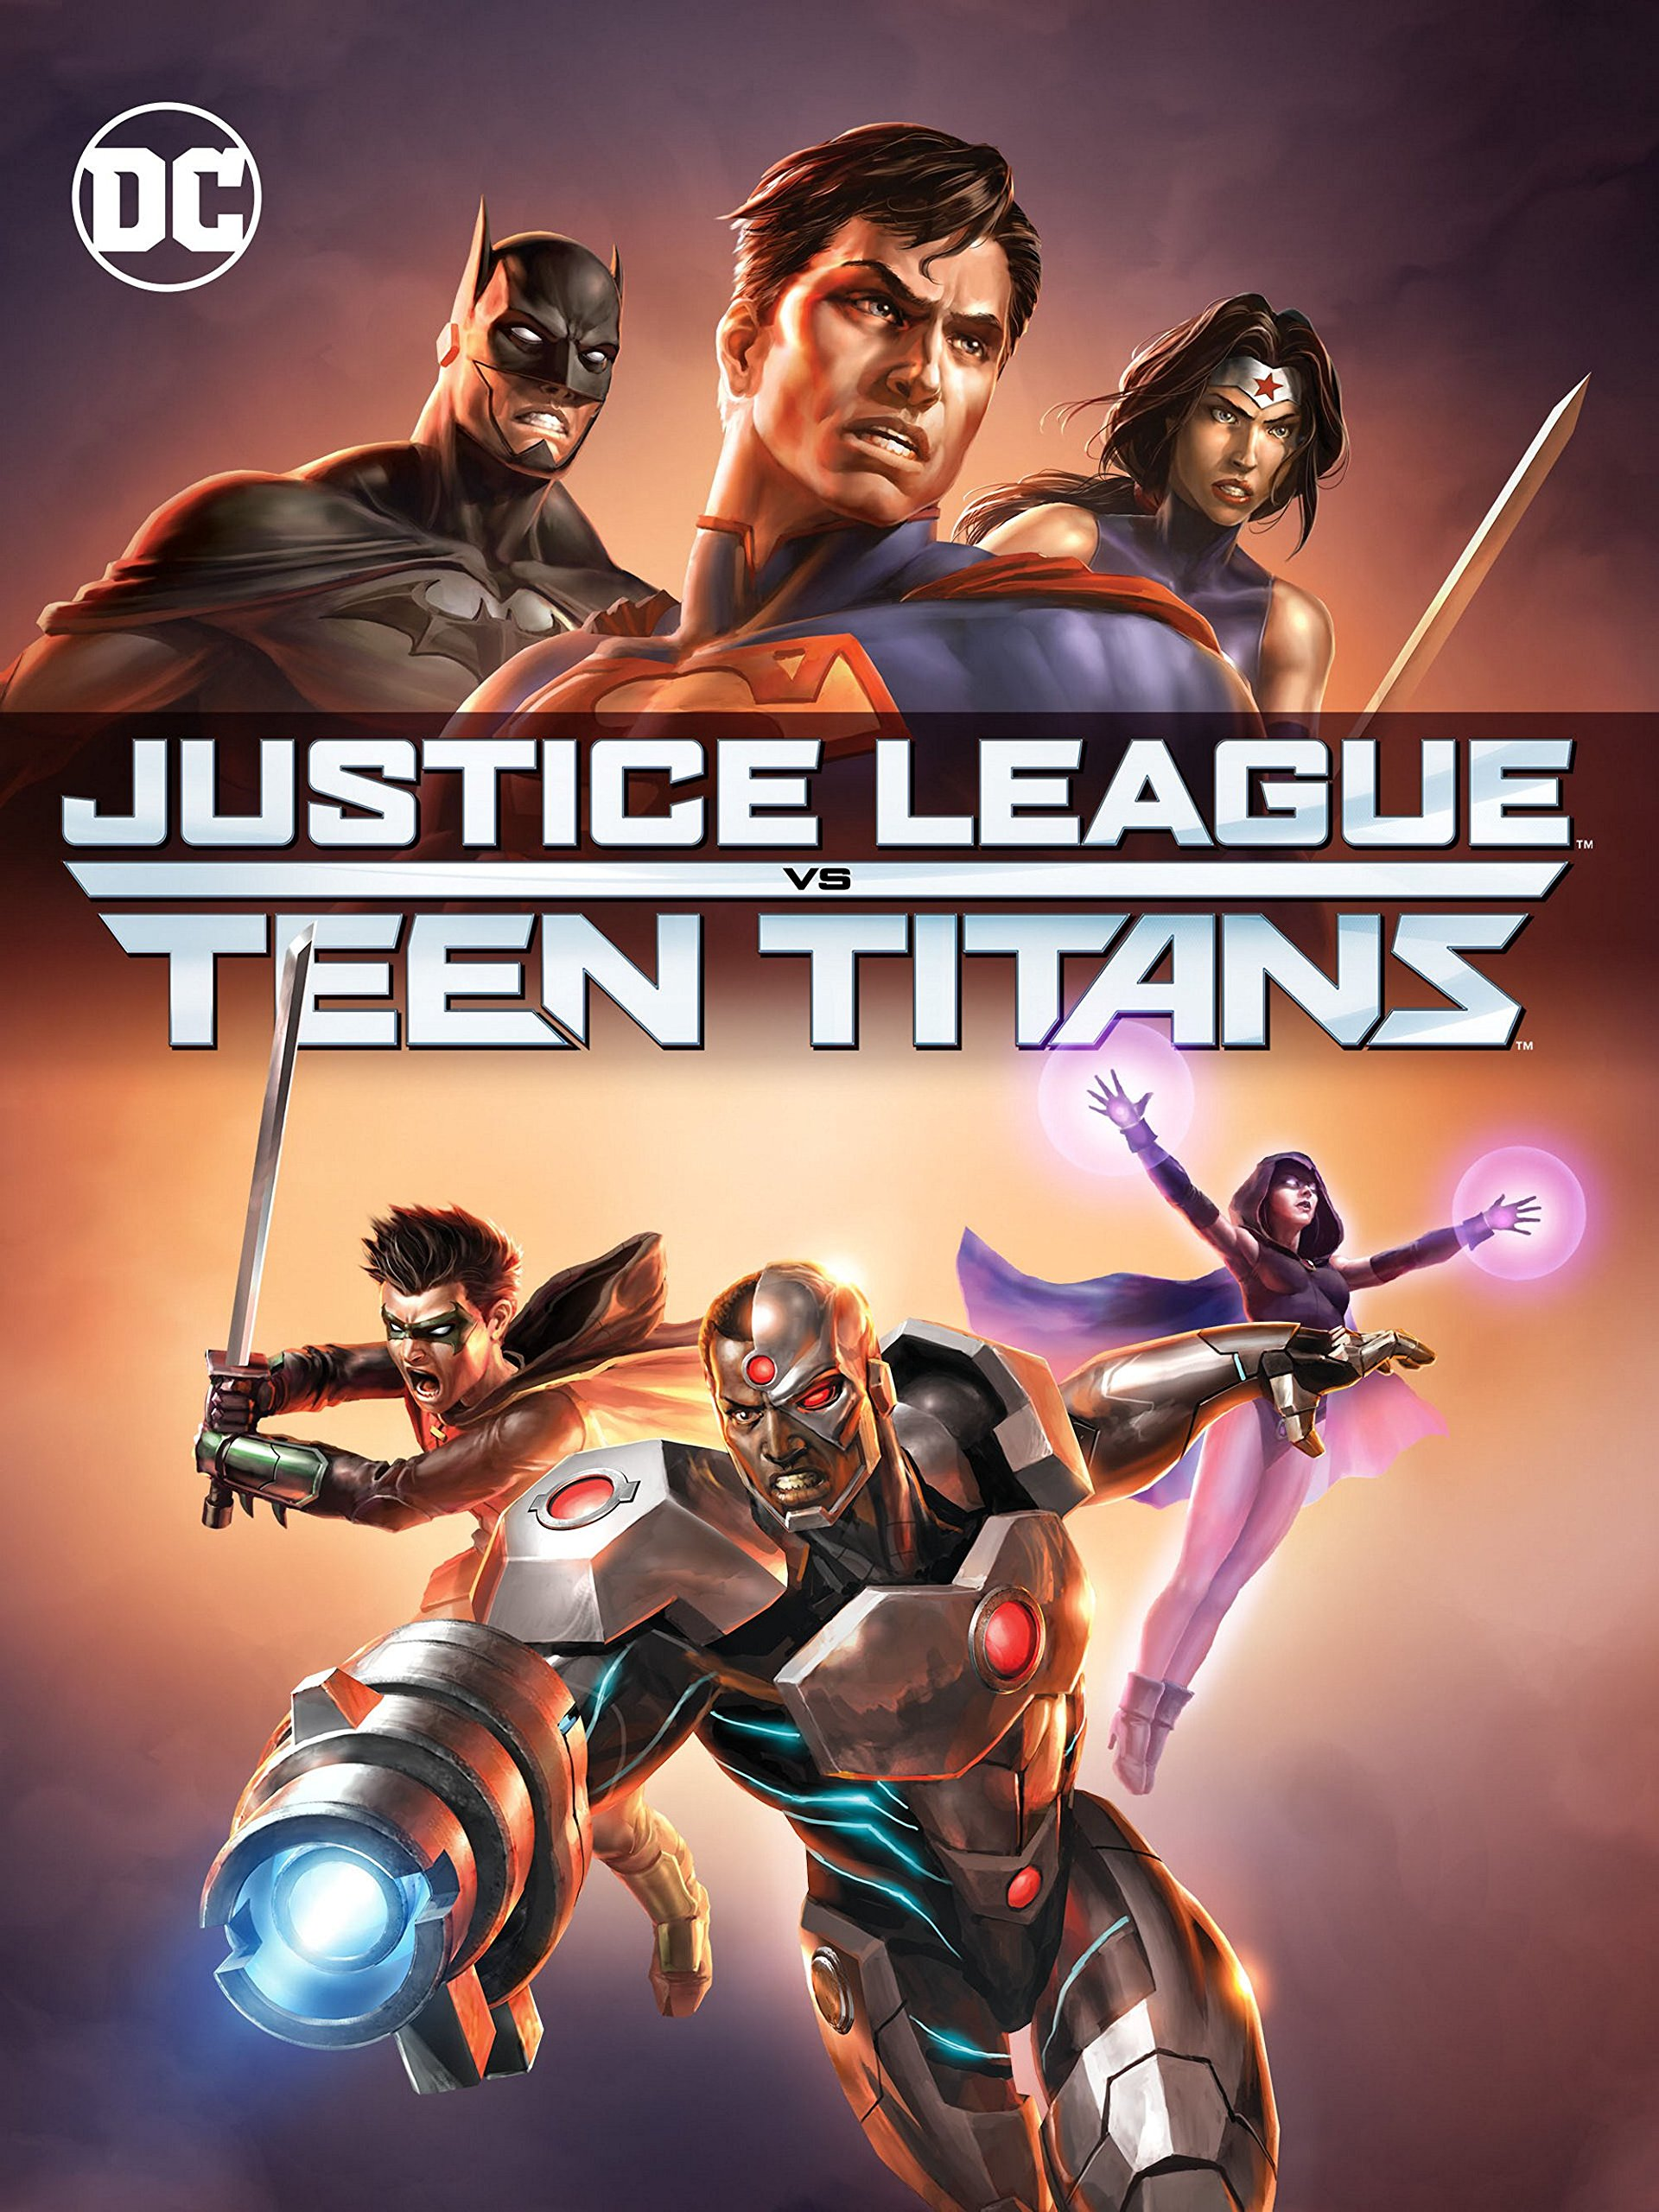 Amazon.com: Justice League vs. Teen Titans: Rosario Dawson ...